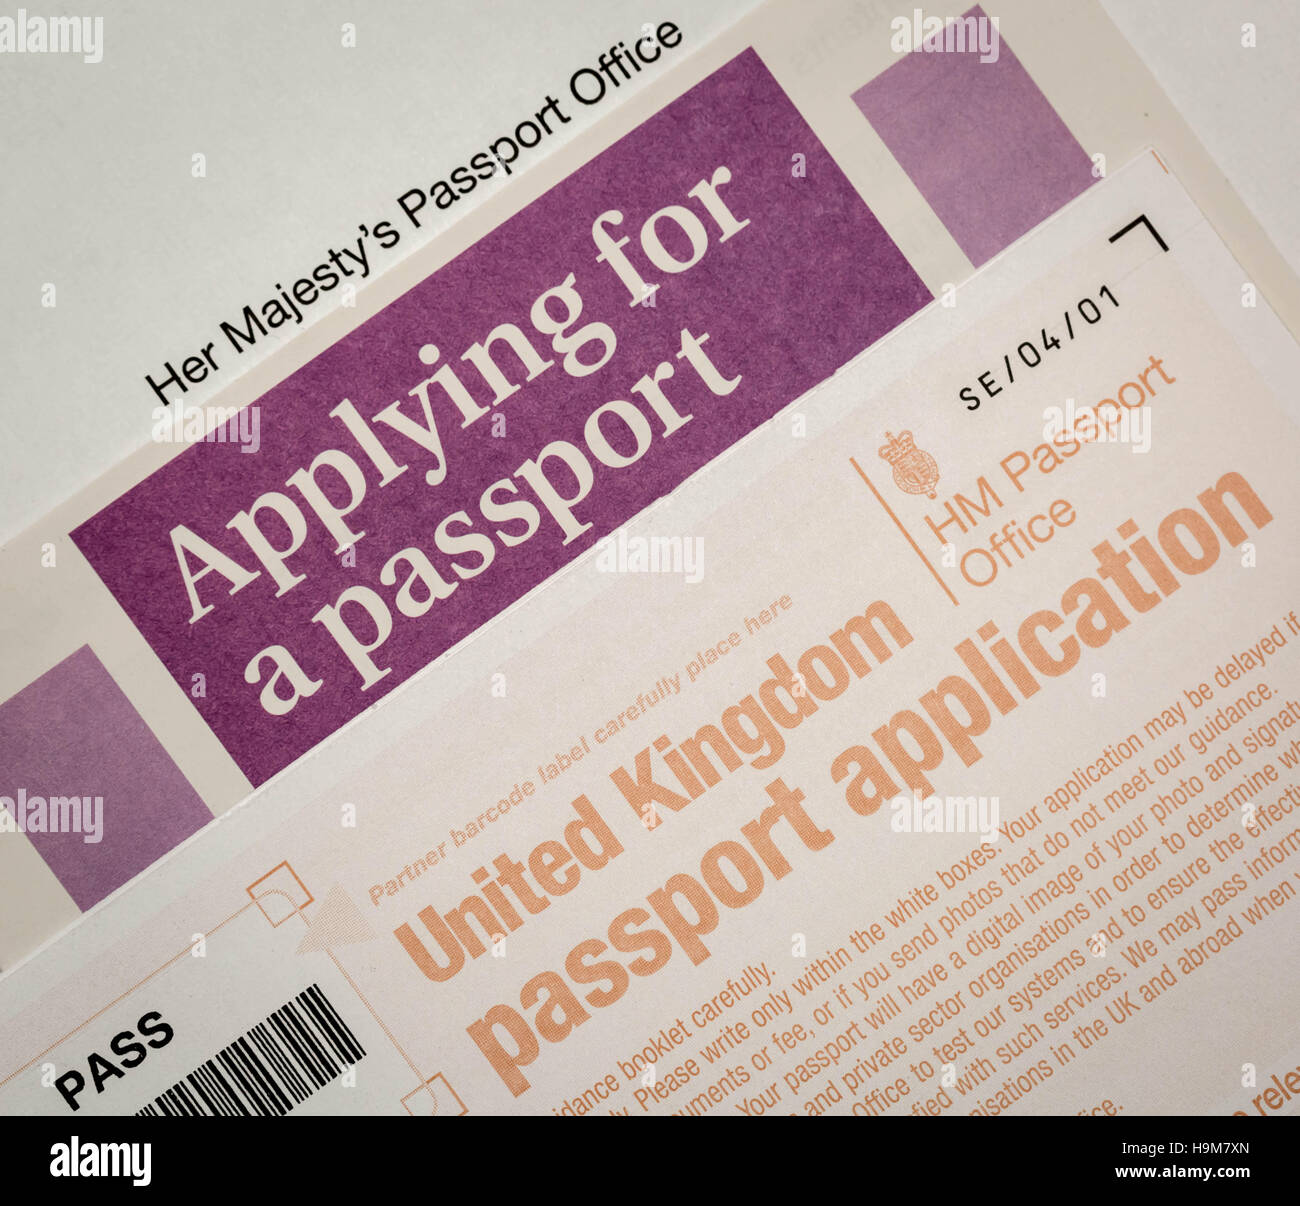 Passport application form for a passport of the united kingdom of passport application form for a passport of the united kingdom of great britain and northern ireland falaconquin